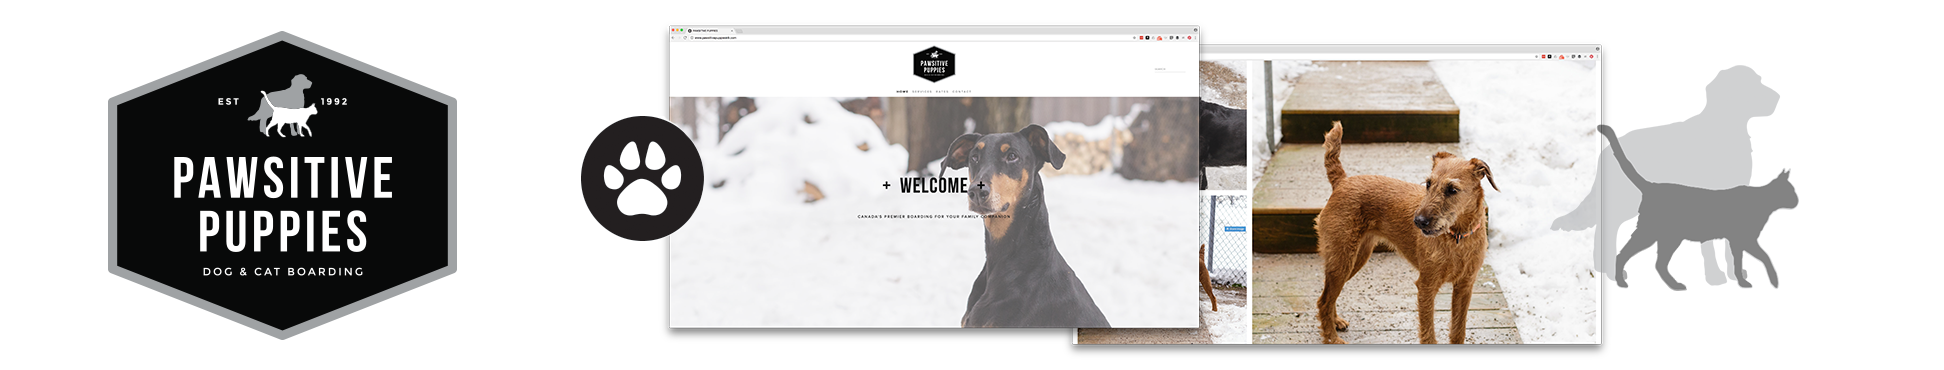 Pawsitive Puppies - Canada   Logo Brand Identity Photography Website